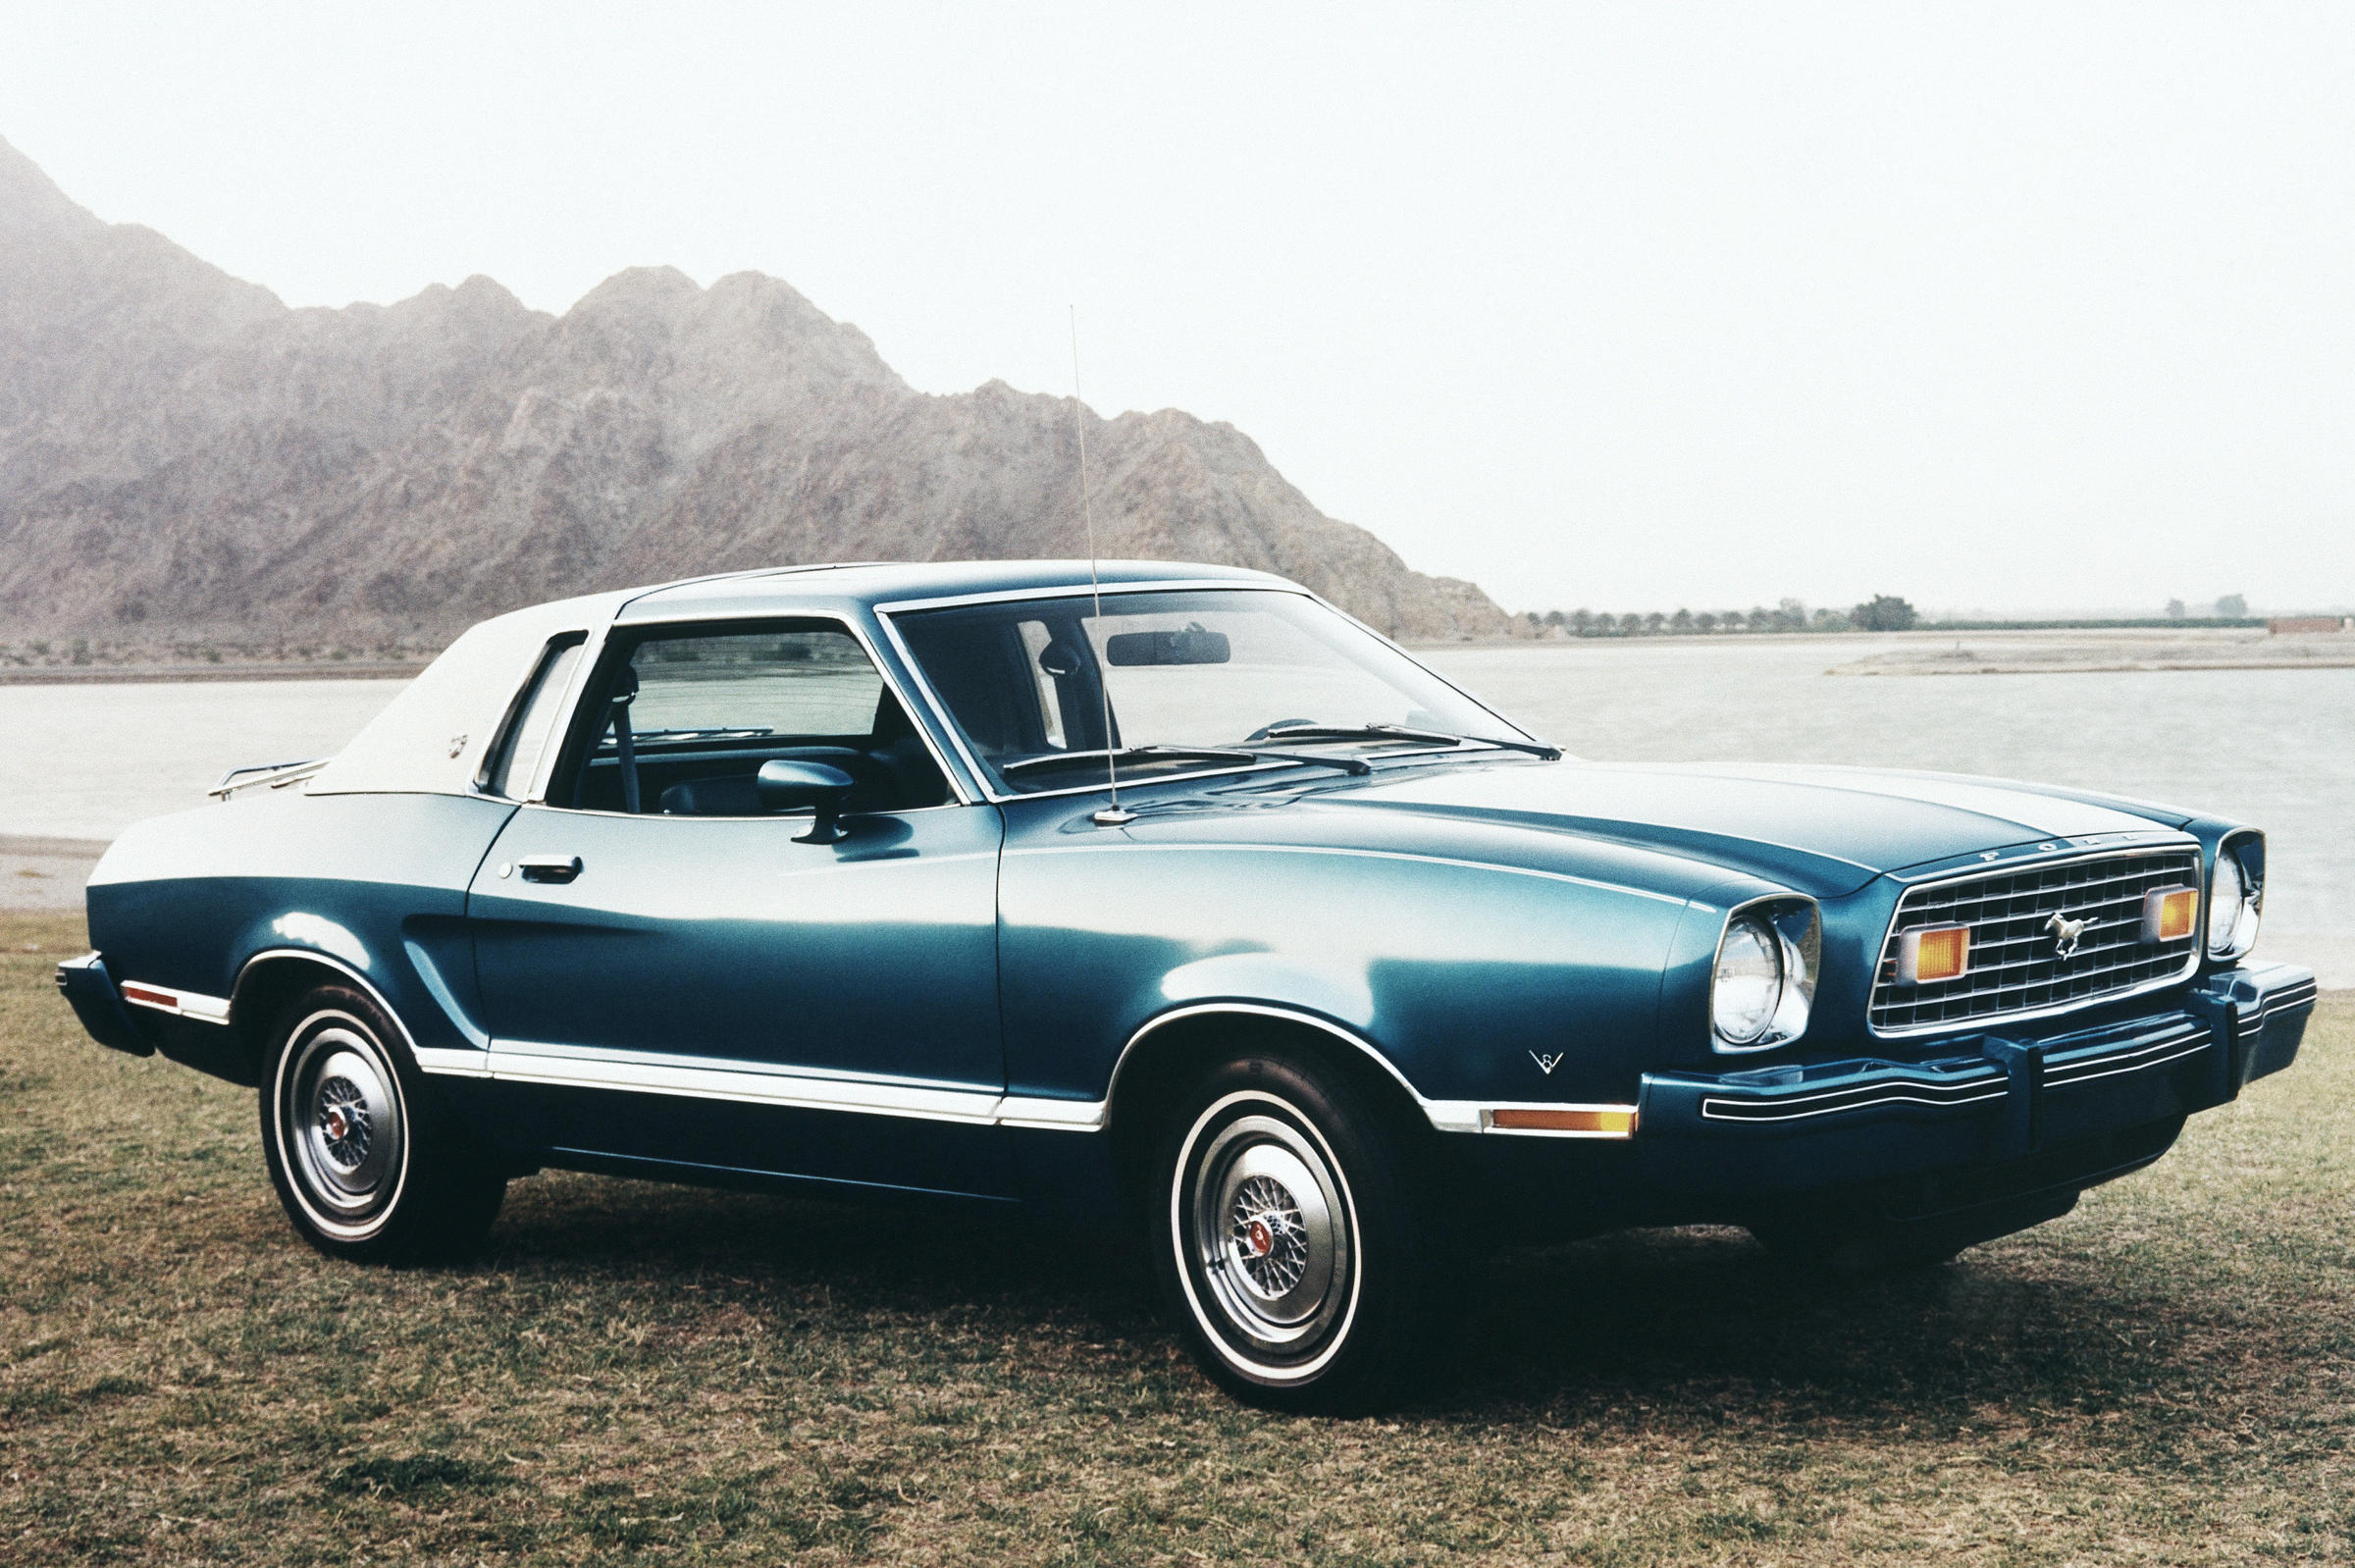 Seen here is a new 1976 ford mustang part of the second generation of mustangs that lasted from 1974 to 1978